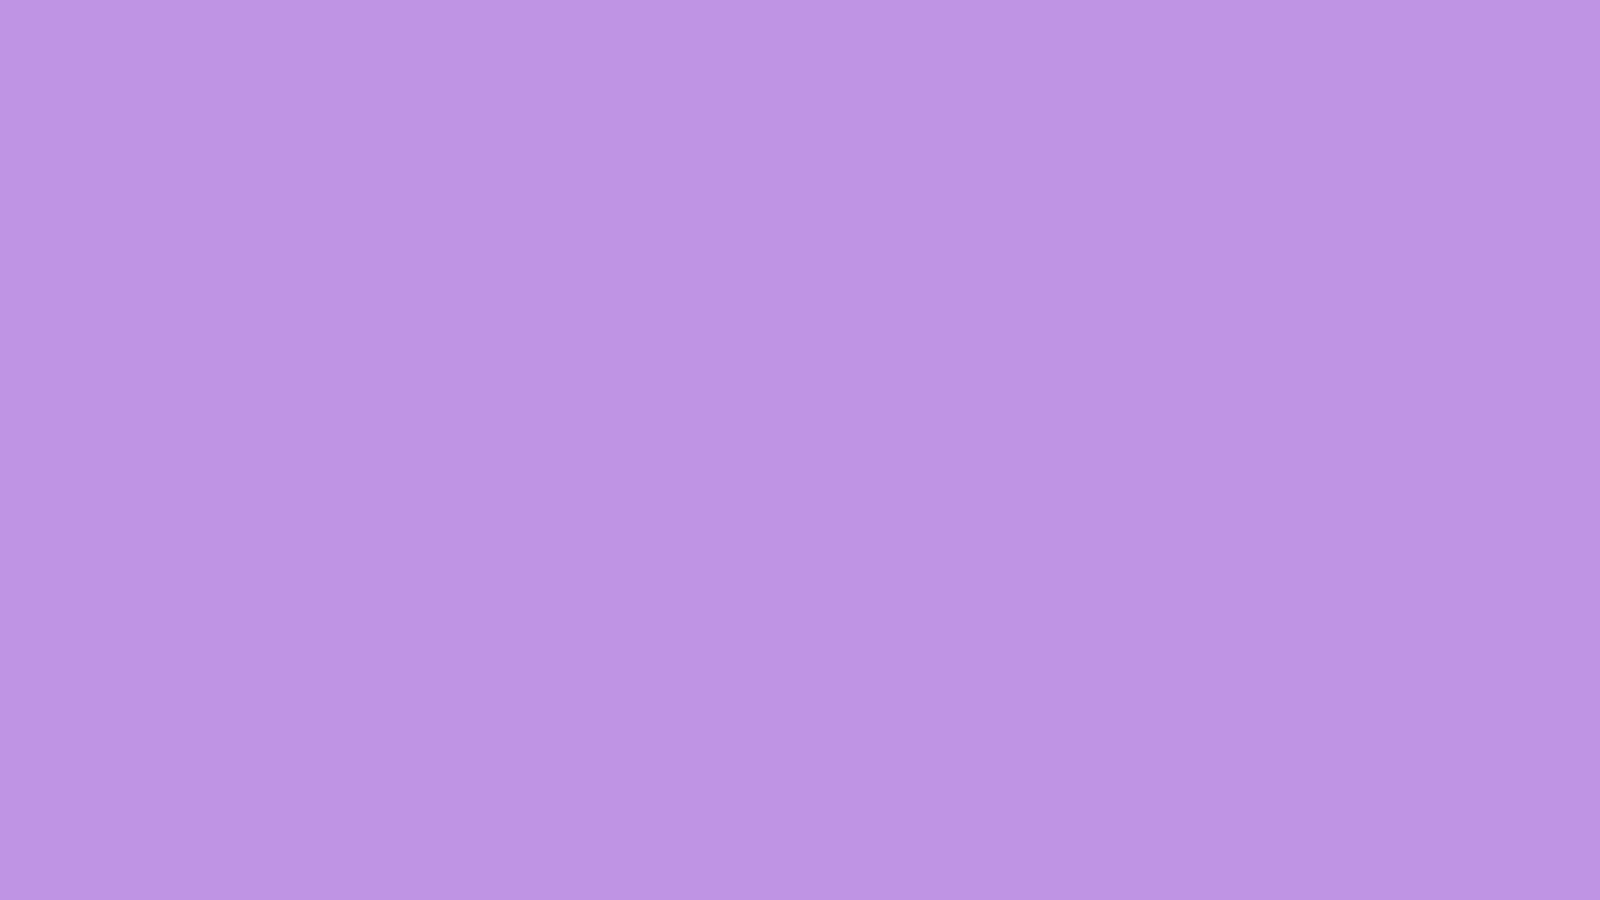 1600x900 Bright Lavender Solid Color Background